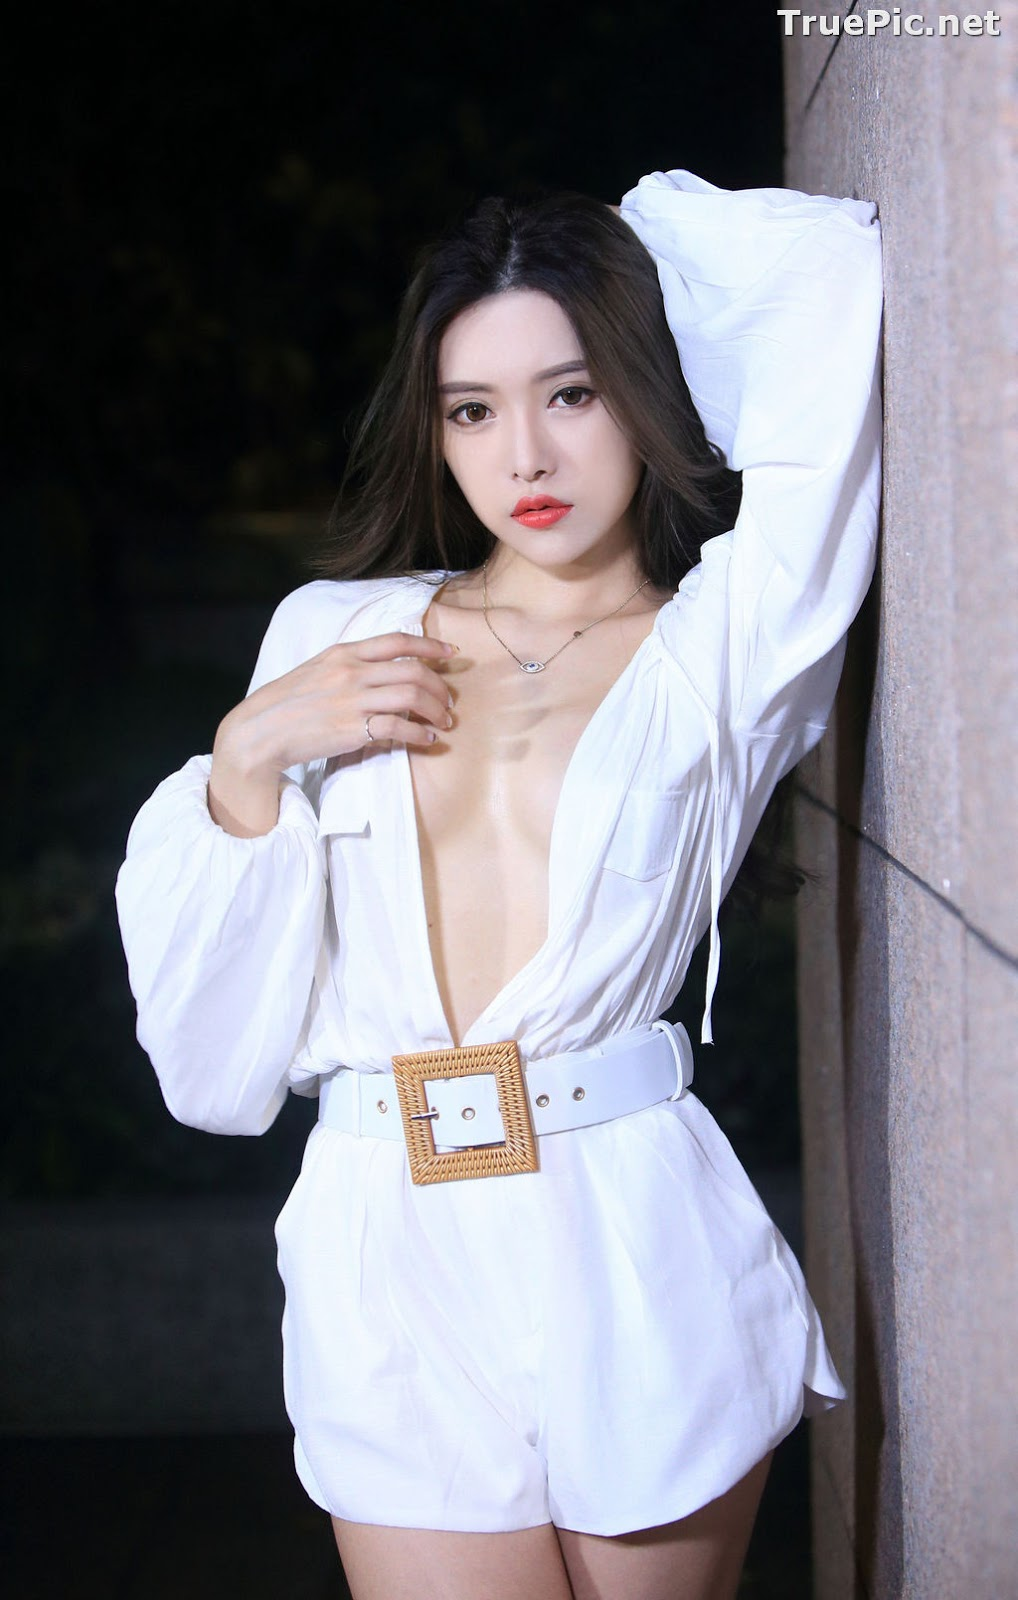 Image Taiwanese Model – 莊舒潔 (ViVi) – Sexy and Pure Baby In Night - TruePic.net - Picture-65